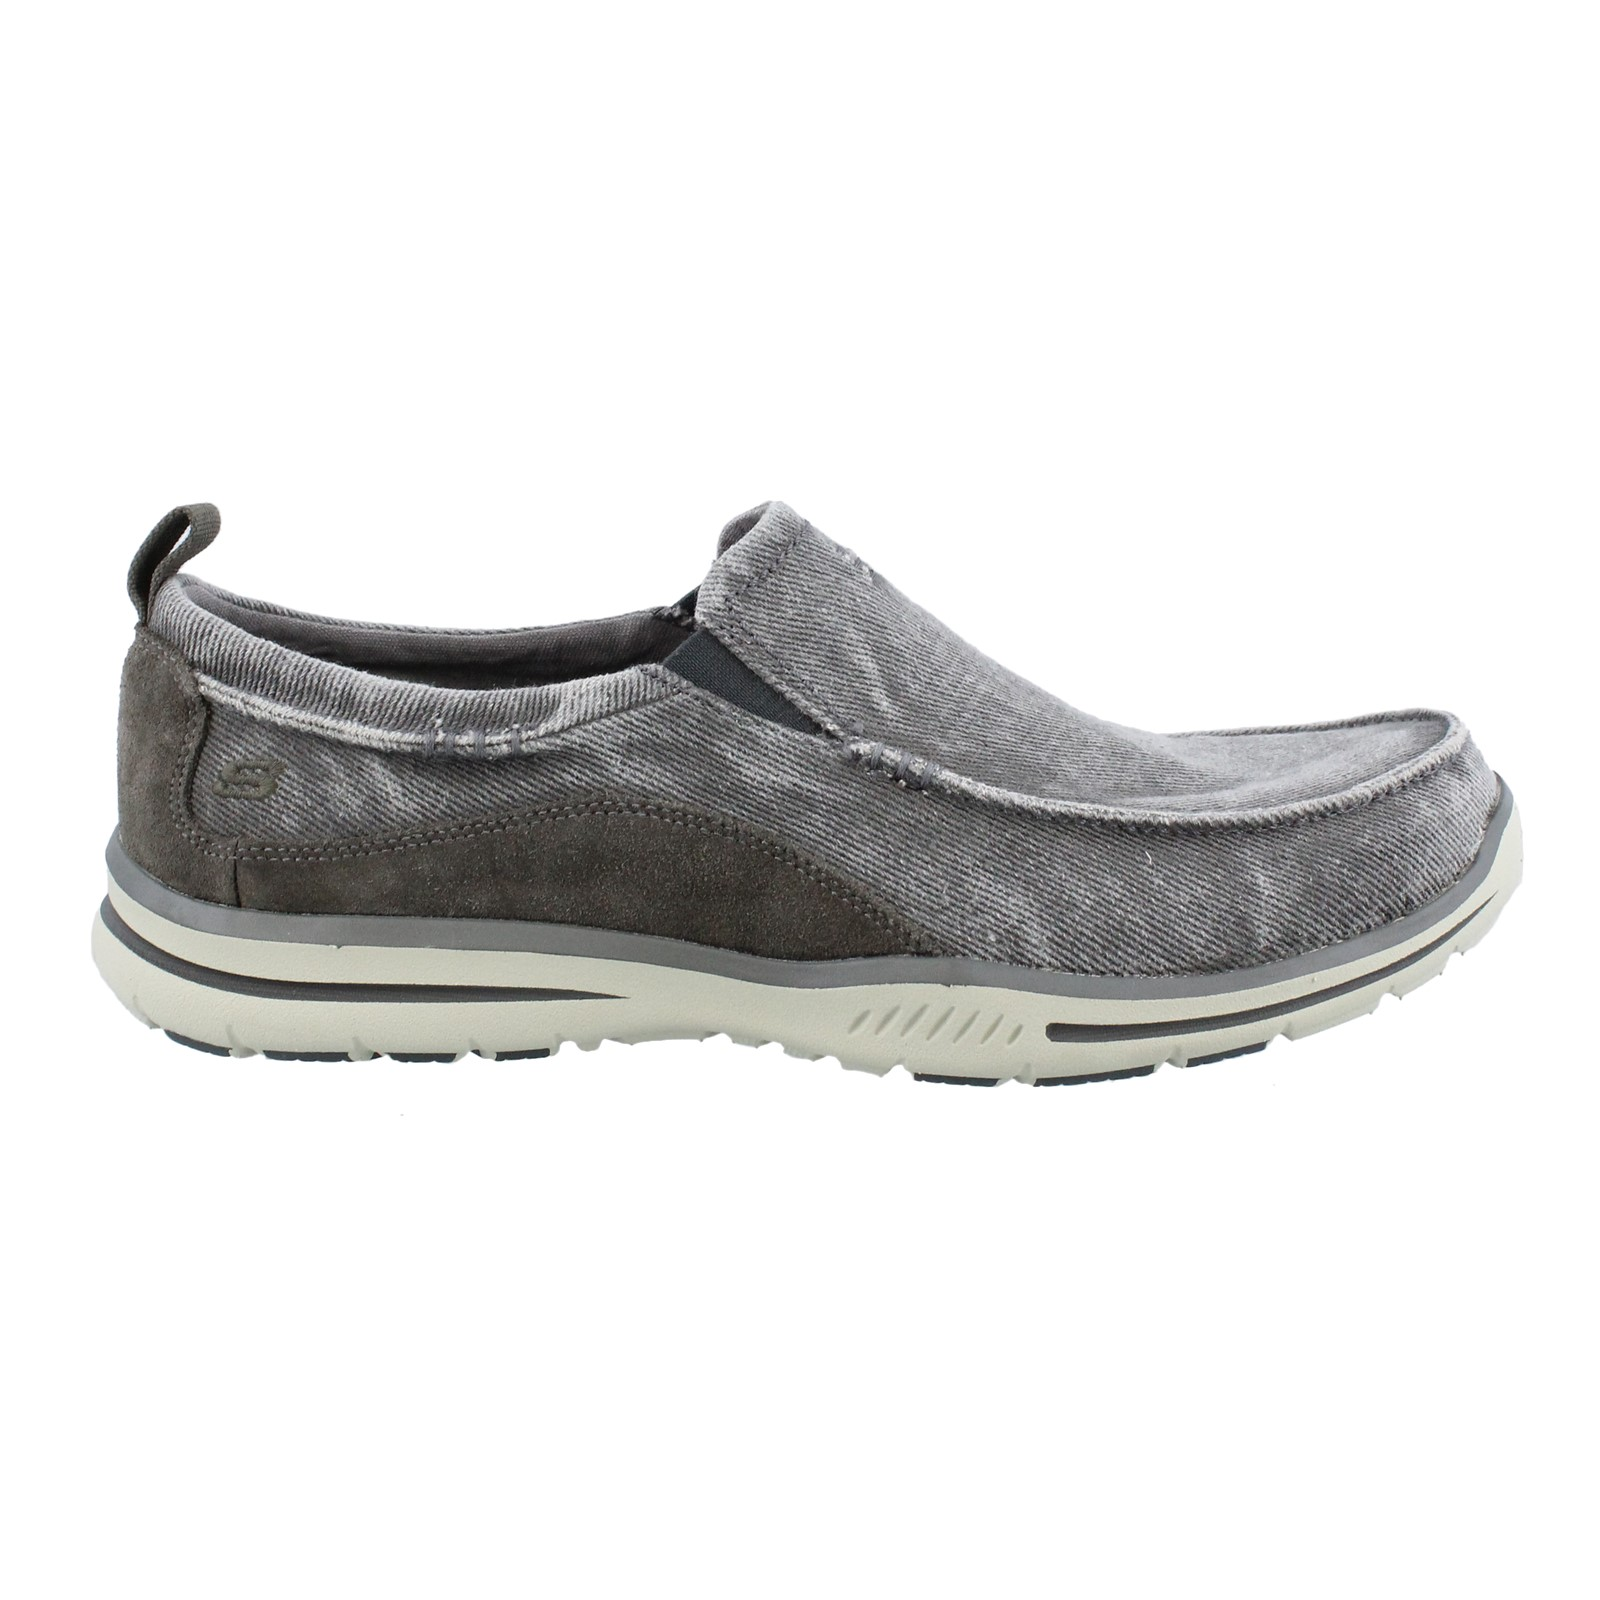 Men's Skechers, Elected Drigo Slip on Shoe Wide Width